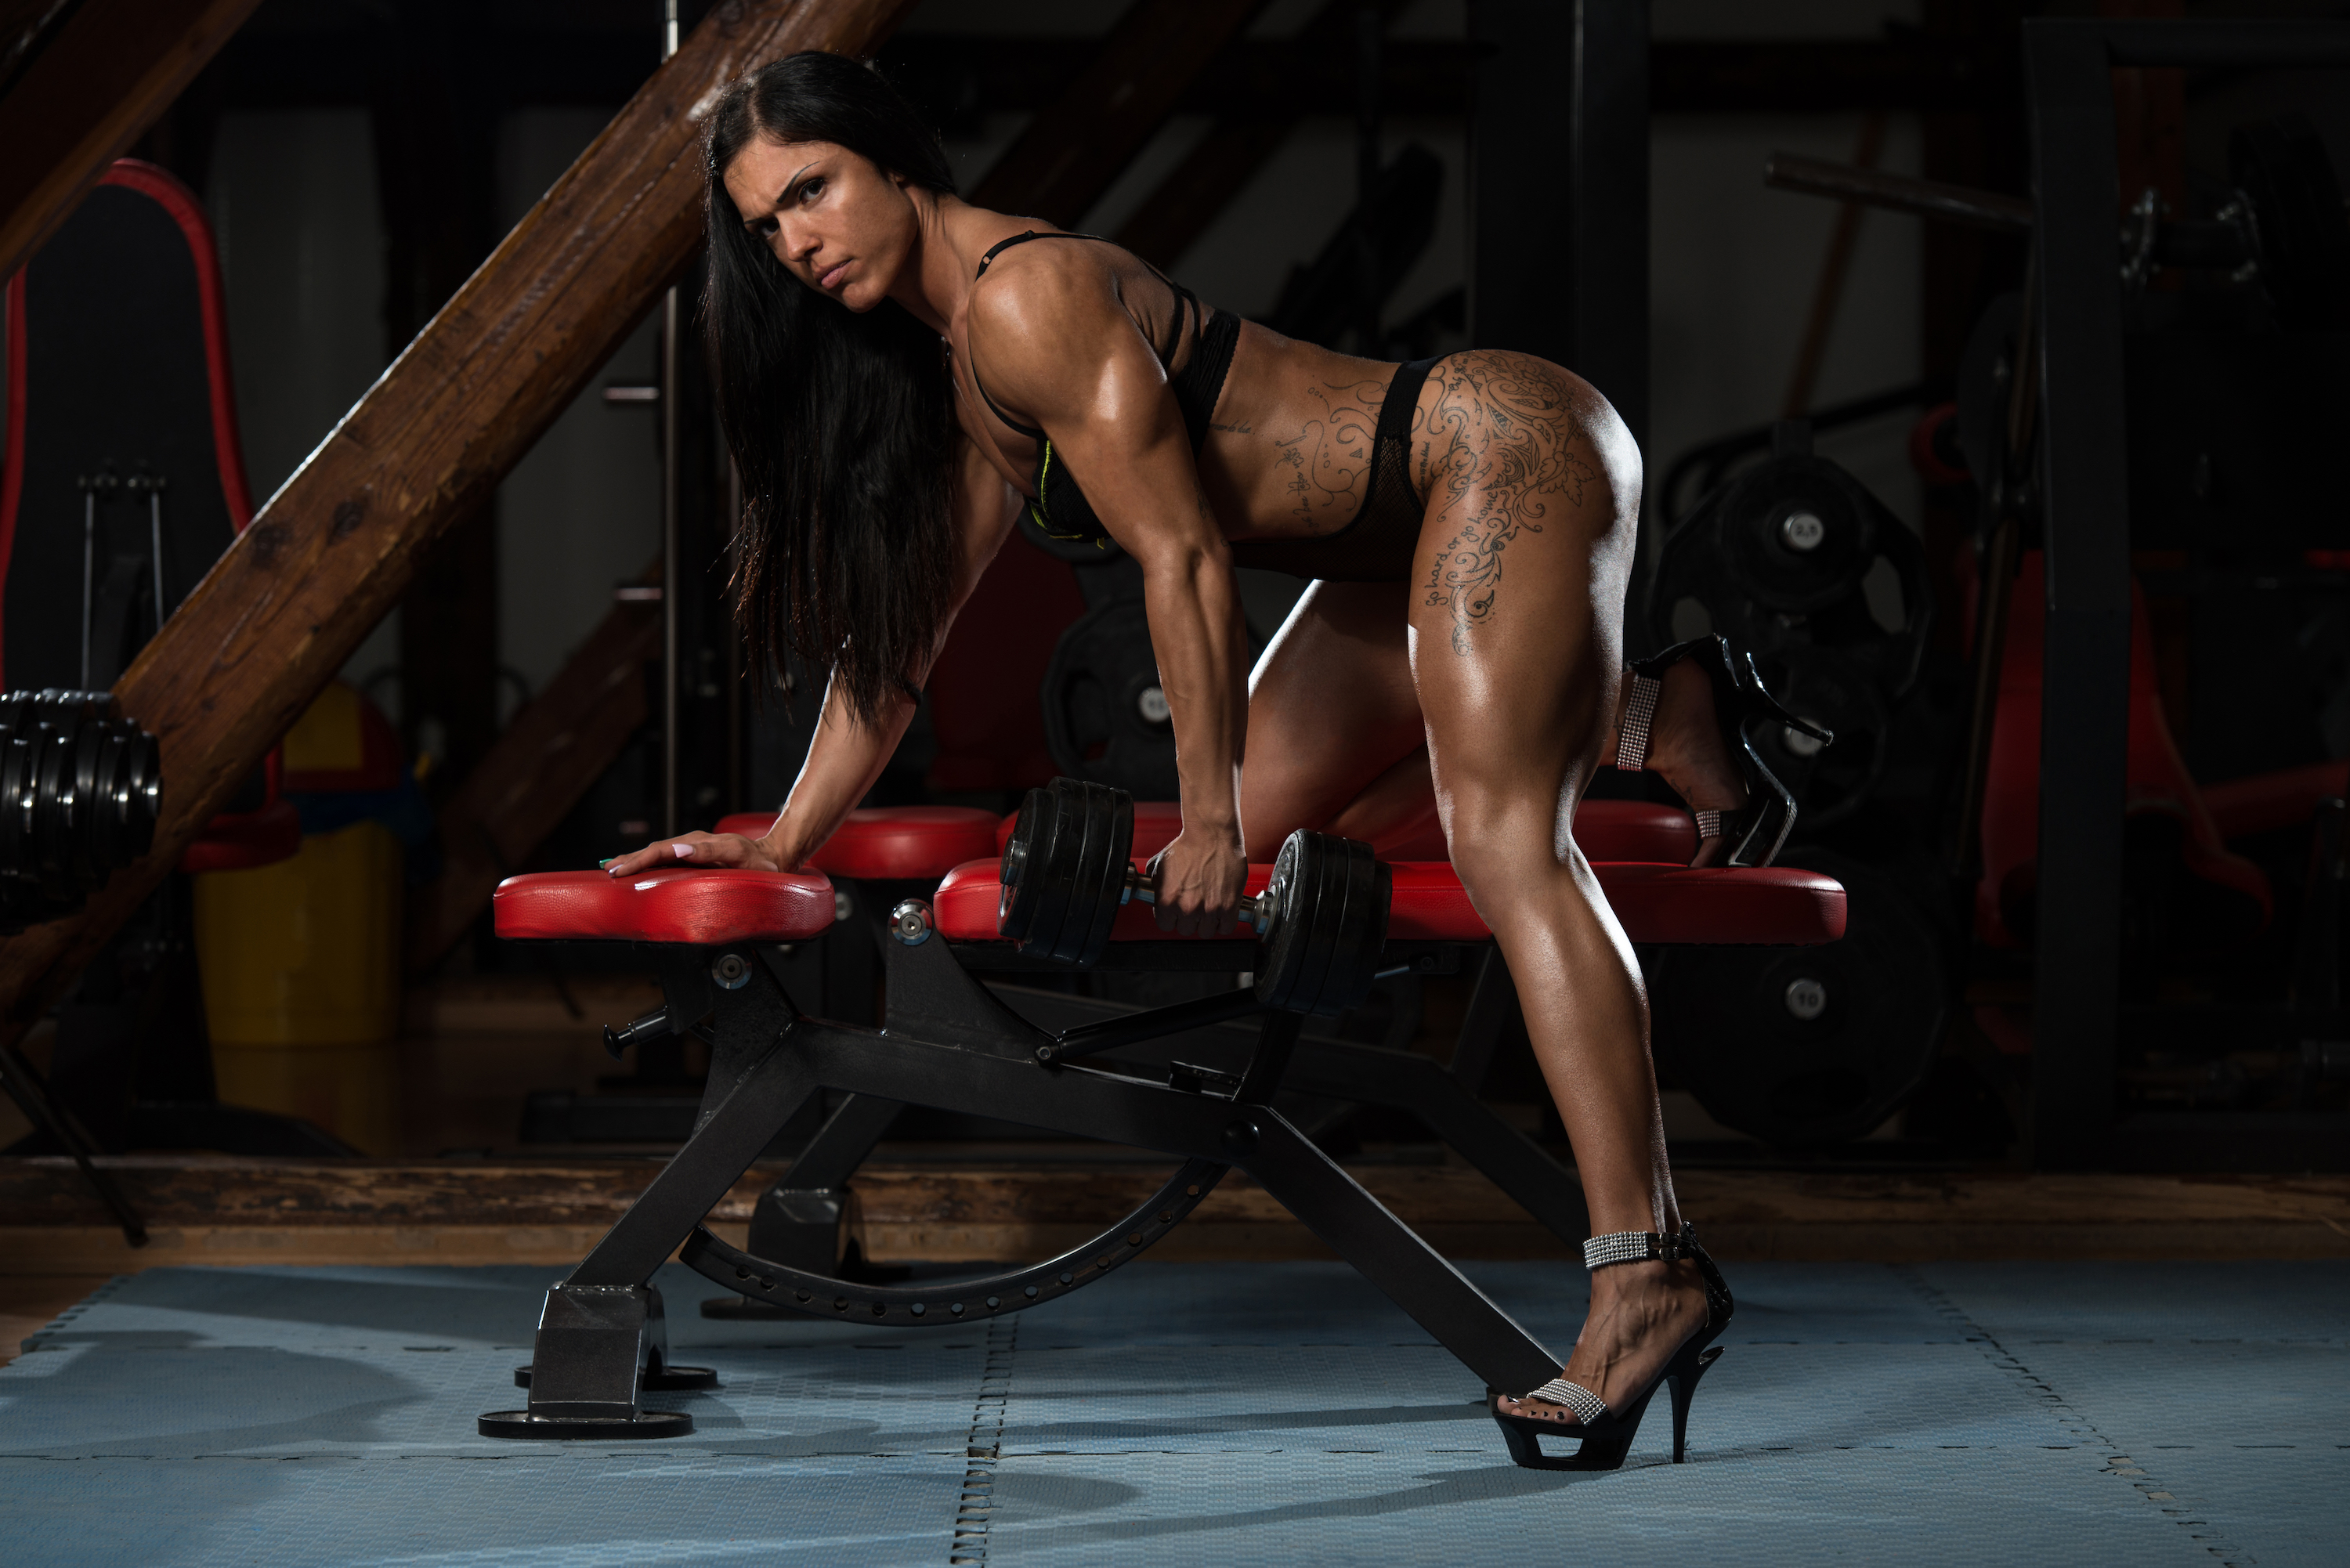 People 3000x2002 women women indoors Bodybuilder Aleksandra Vasiljevic dark hair long hair bodysuit side view looking at viewer weight bench weightlifting high heels glutes tattoo gyms muscular